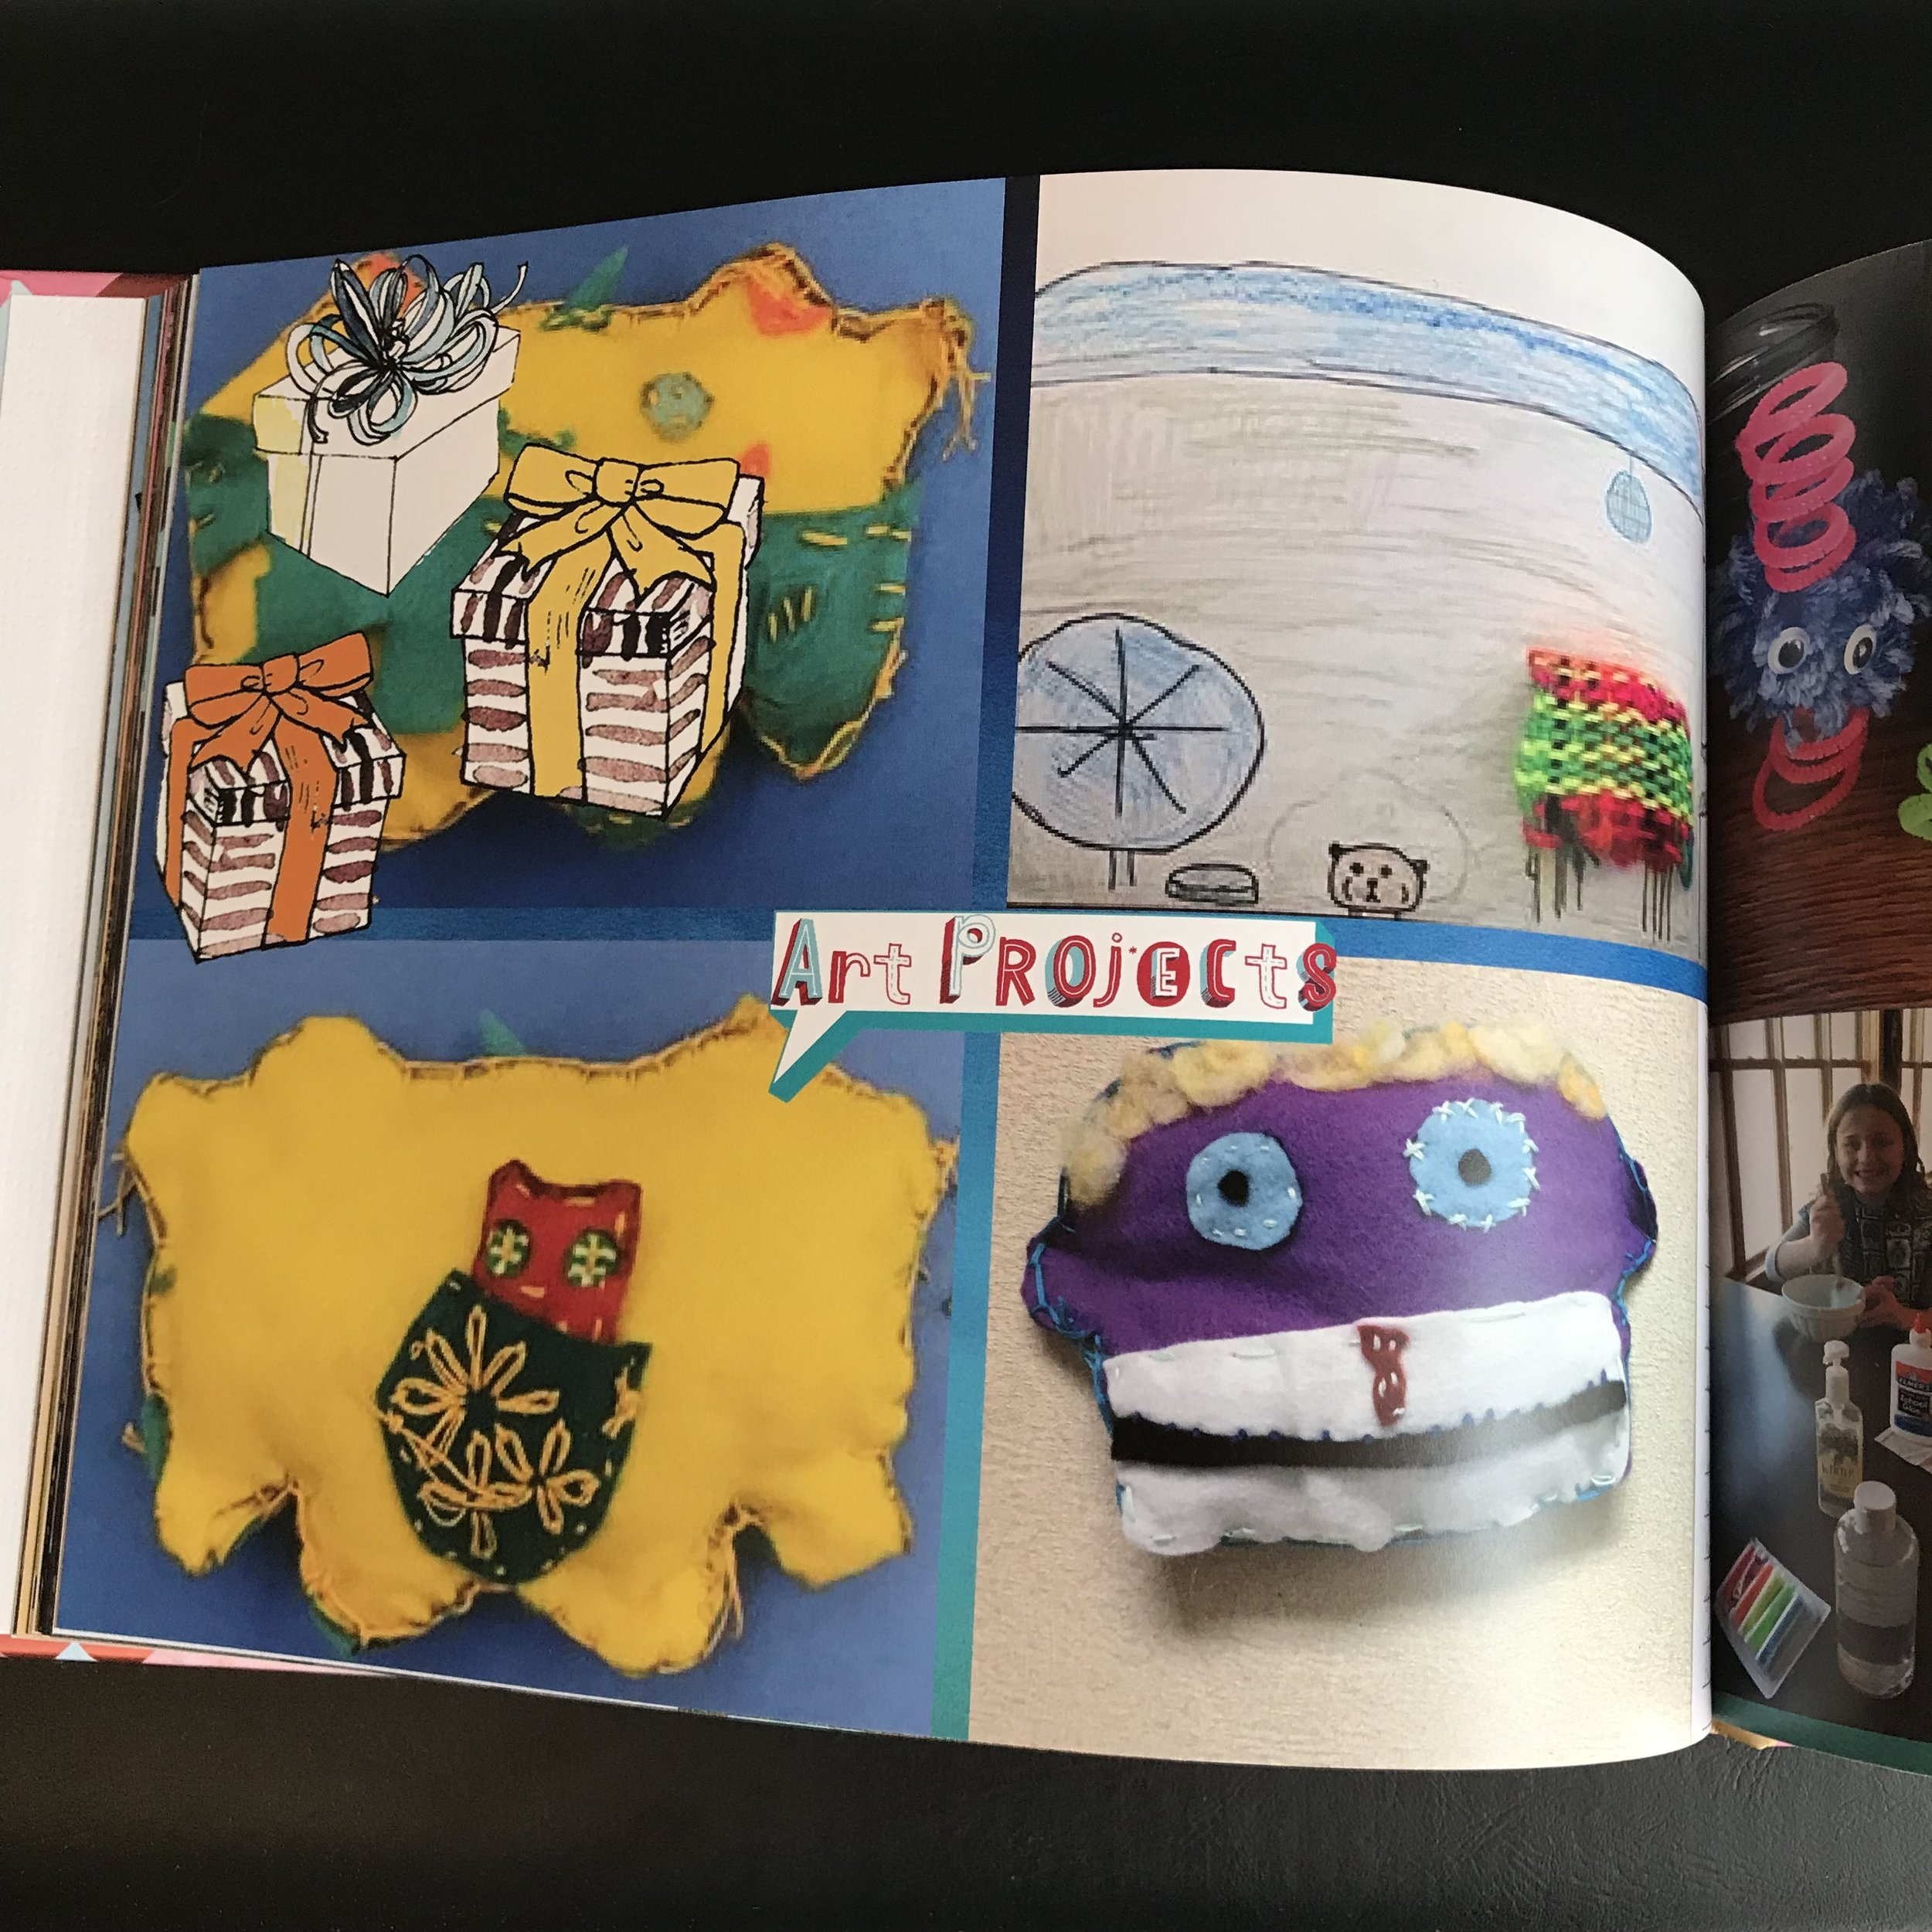 Option 3: Scan or Photograph Items and Make a Photo Album for the School Year